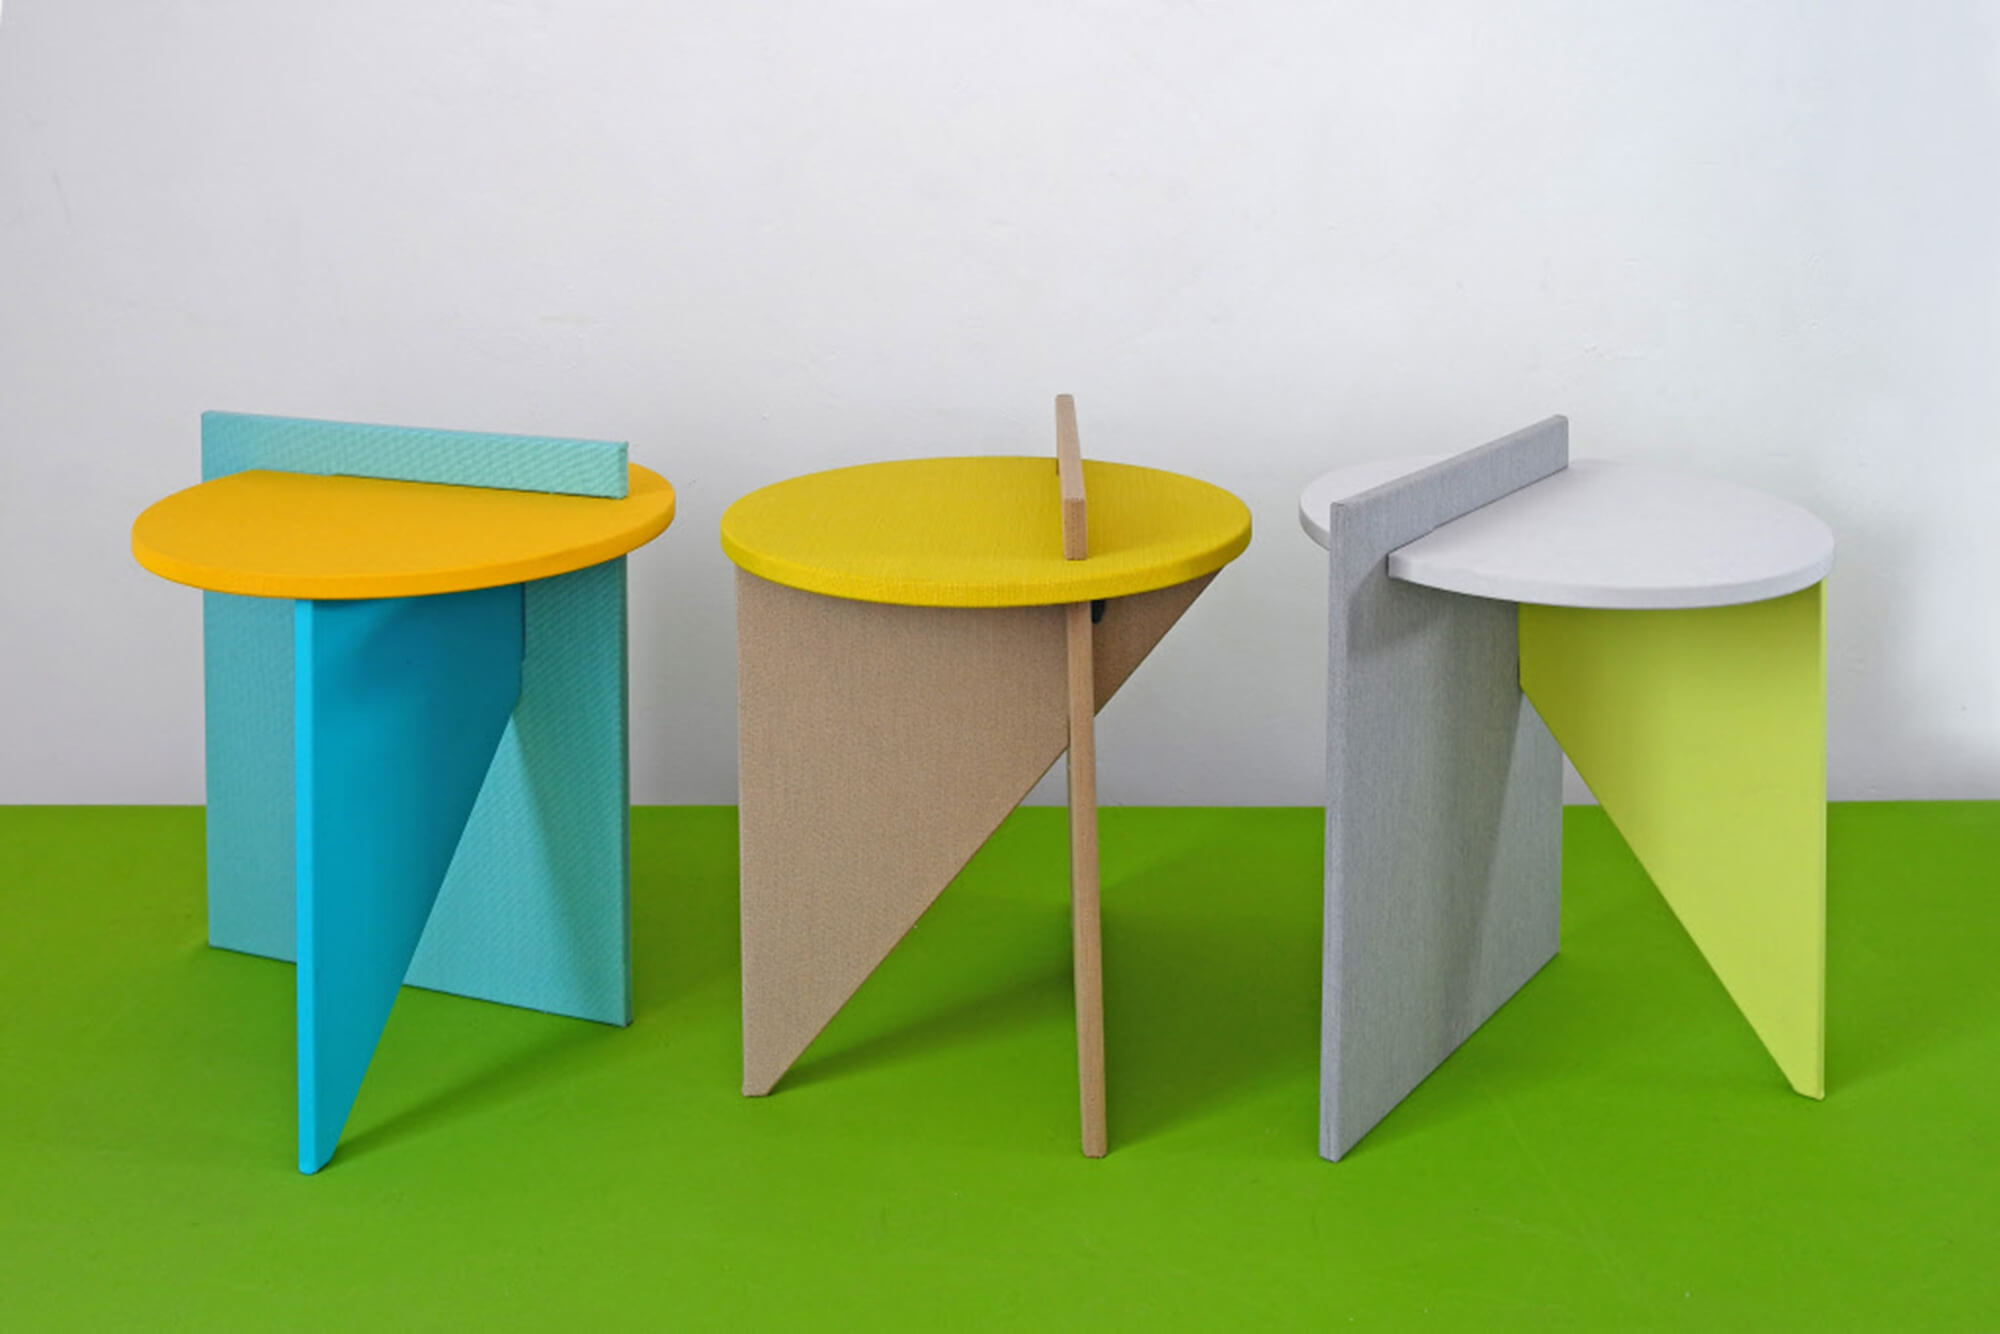 Blue, Yellow, and Green colored side tables designed by Atelier Lavit